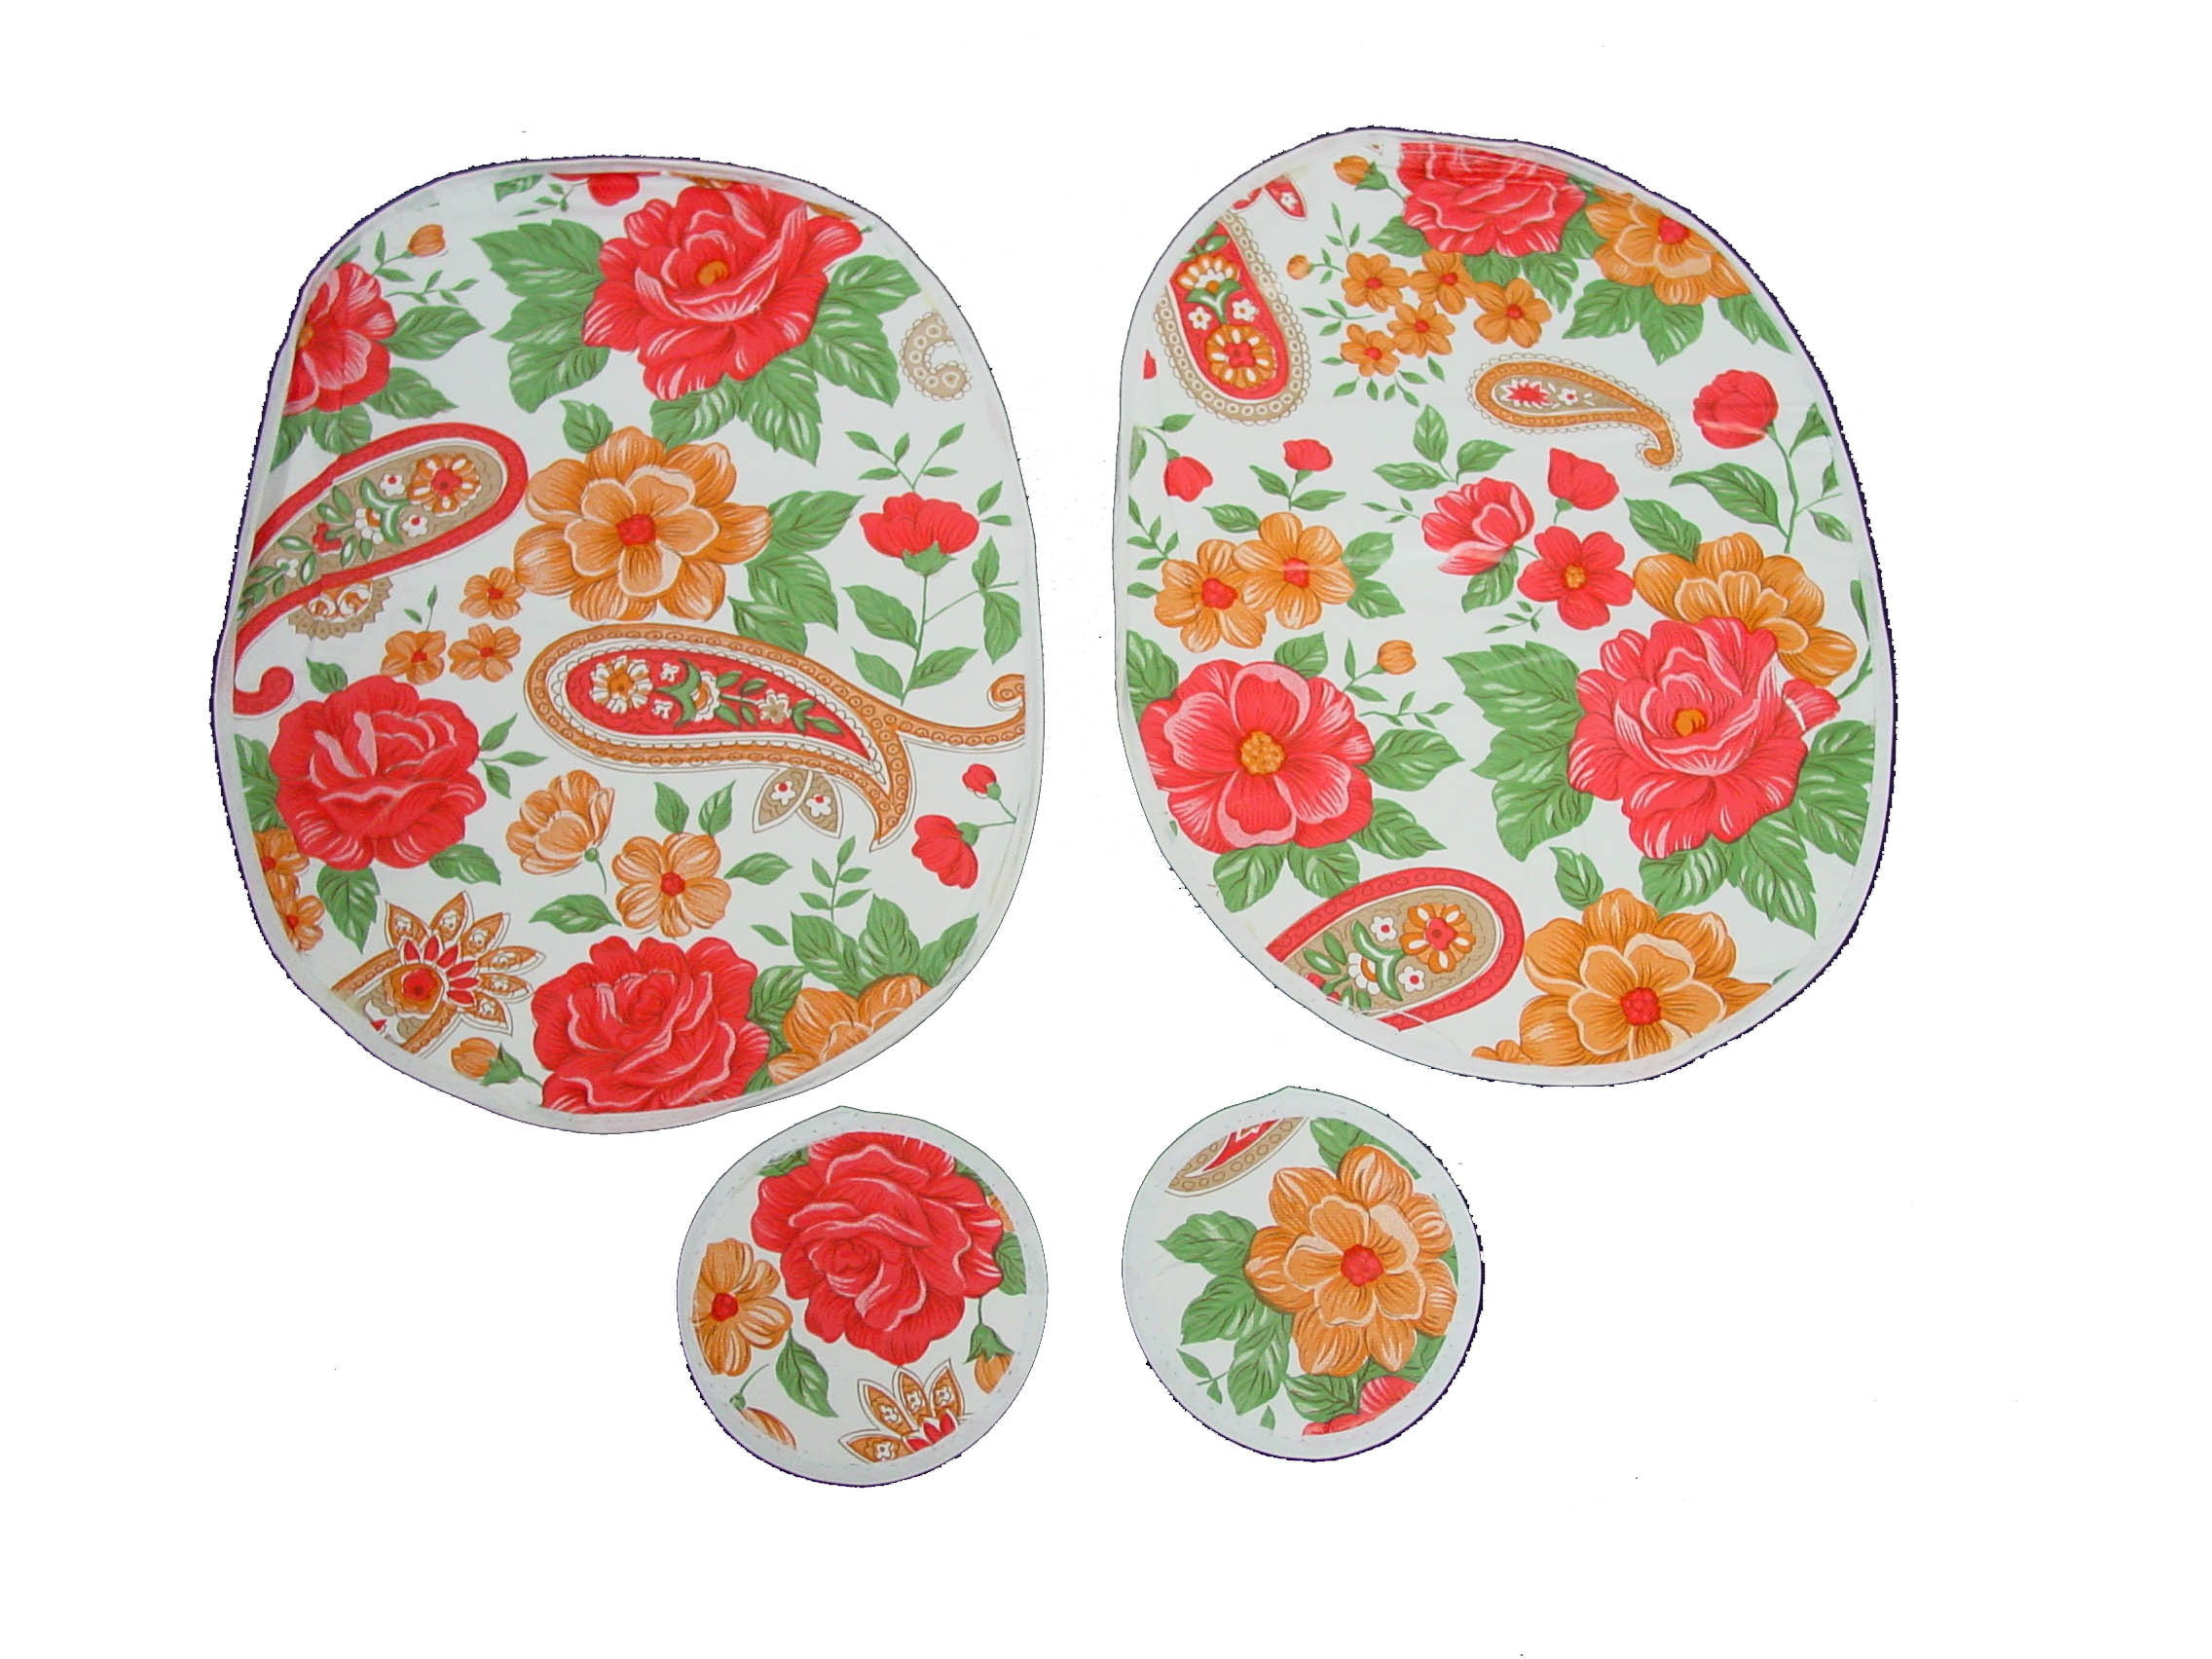 4 Piece Retro Floral Printed Table Set Consists Of 2 Table